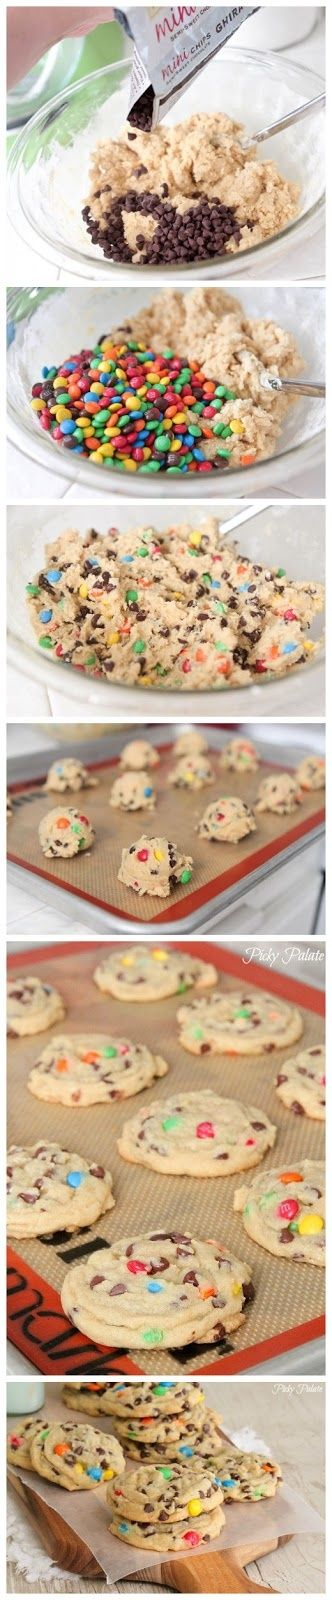 How To Make Perfect M and M Cookies   yummy goodies i want in my tumm ...